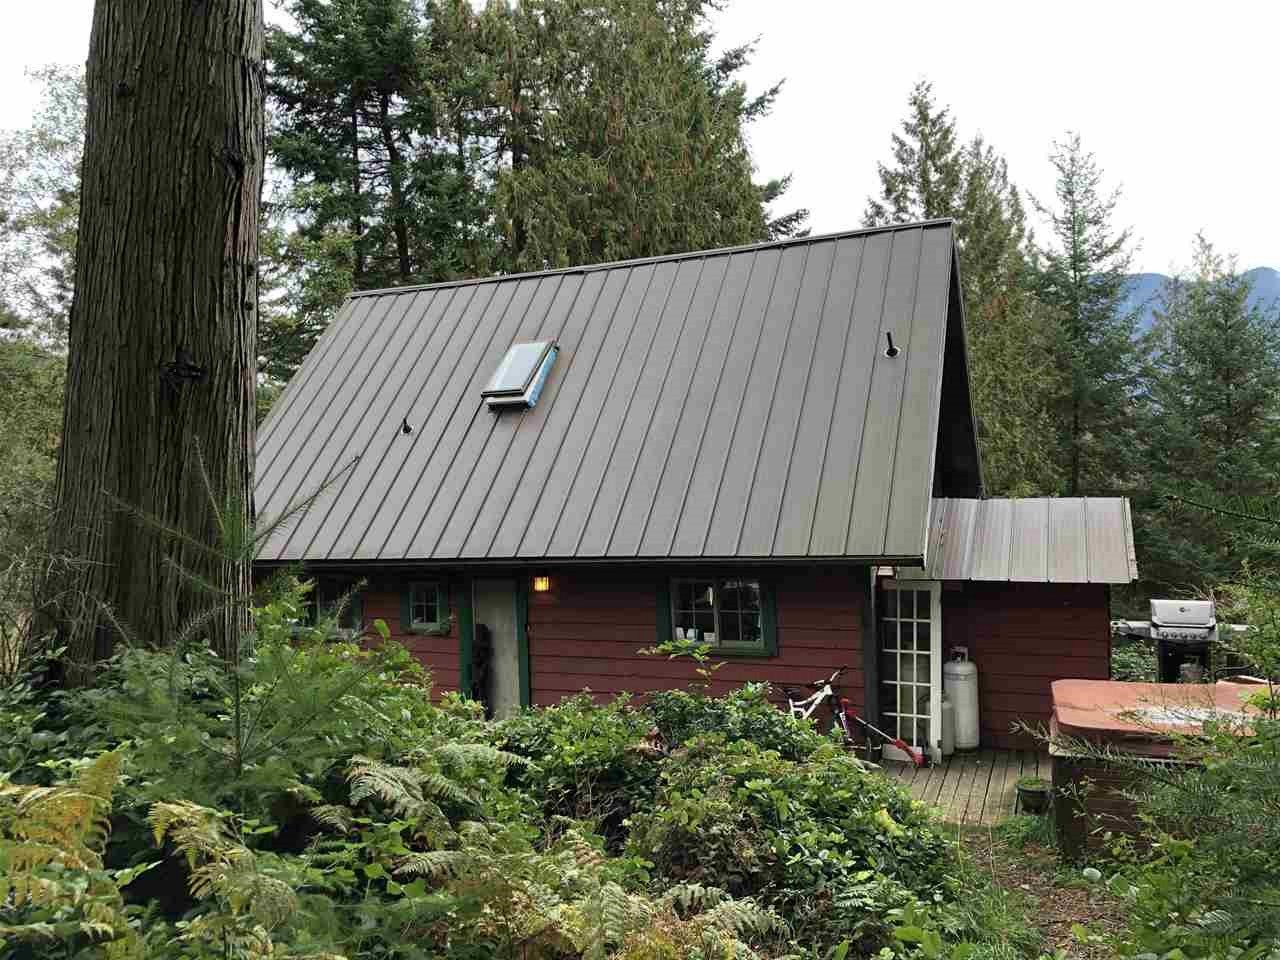 For Sale: 1291 Oceanview Road, Bowen Island, BC | 3 Bed, 1 Bath House for $684000.